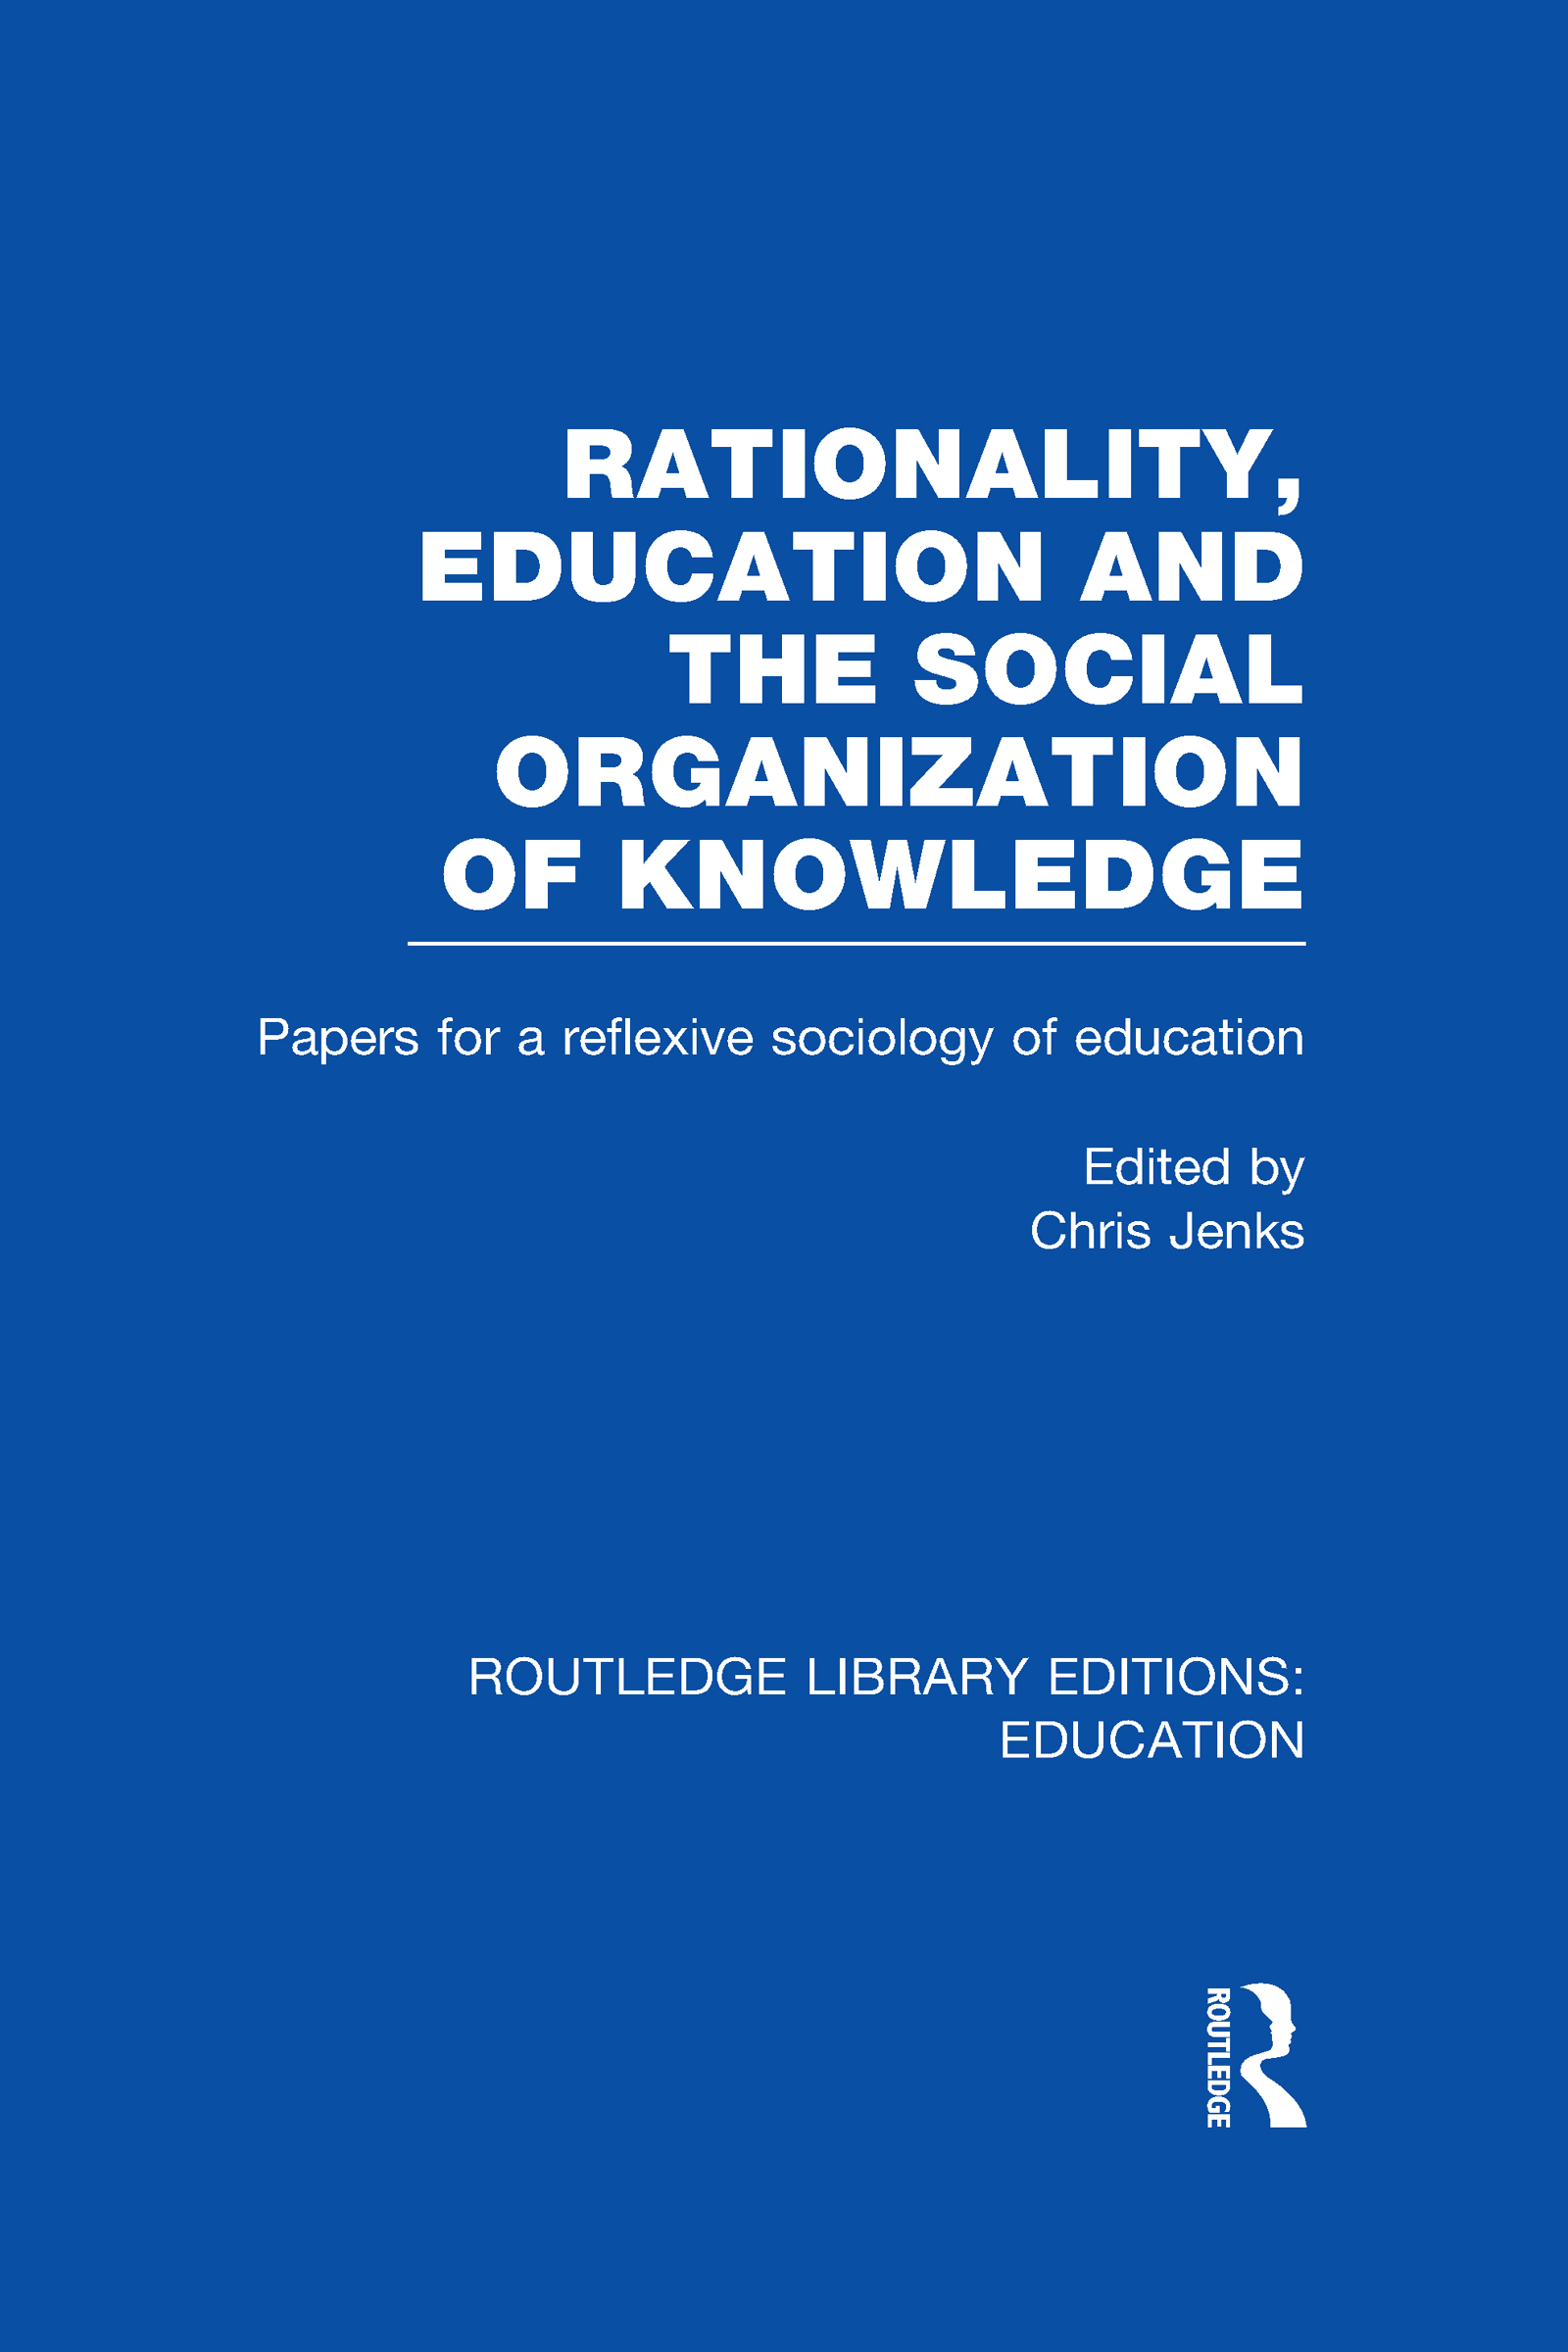 Rationality, Education and the Social Organization of Knowledege (RLE Edu L) (Hardback) book cover